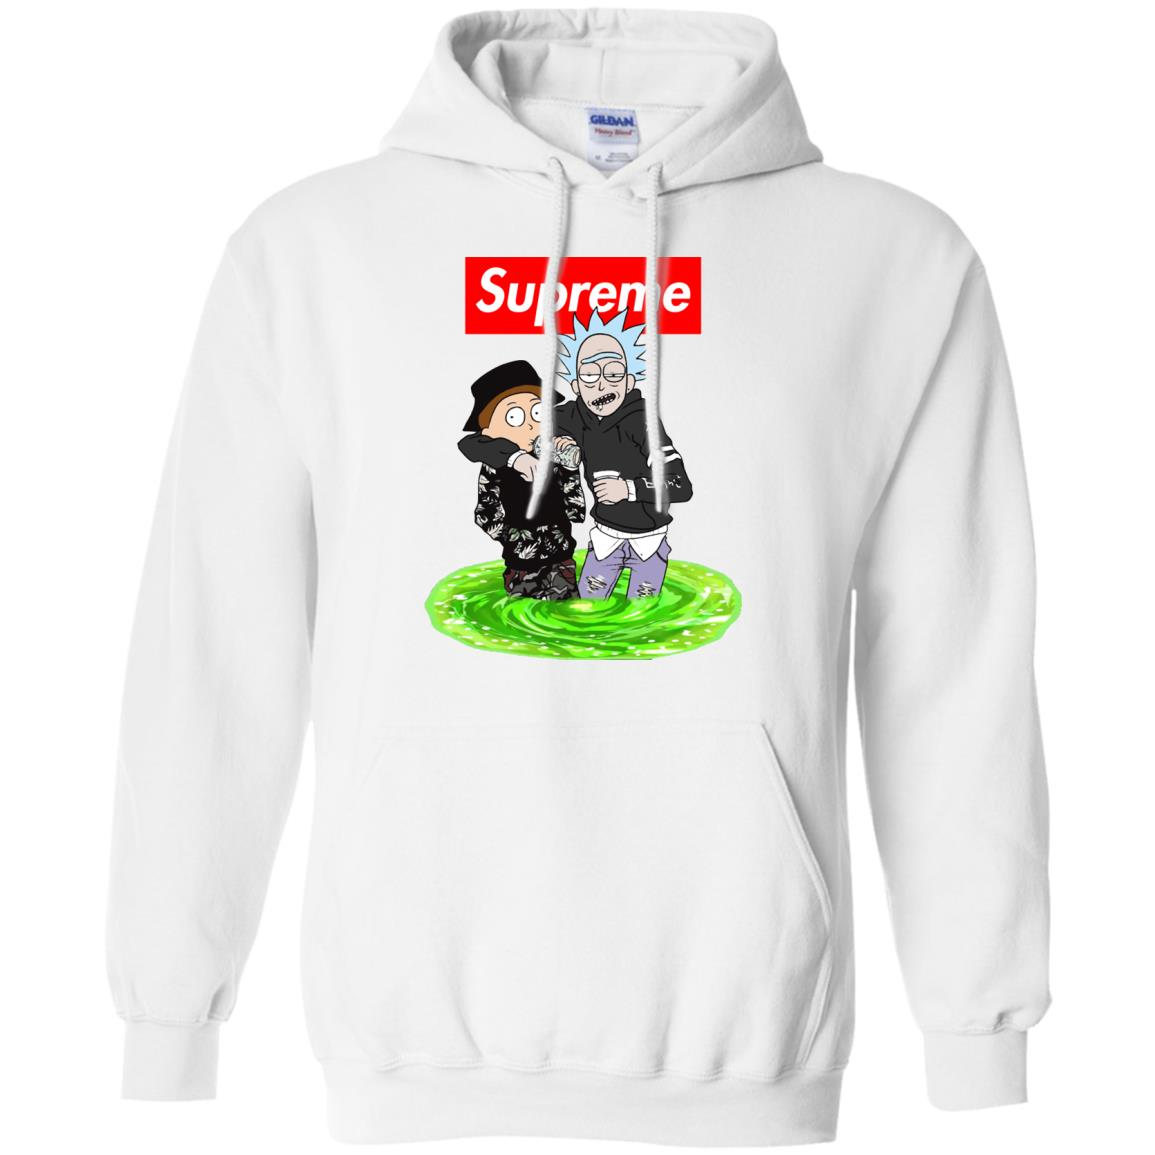 image 2745 - Supreme style Rick and Morty shirt & sweater